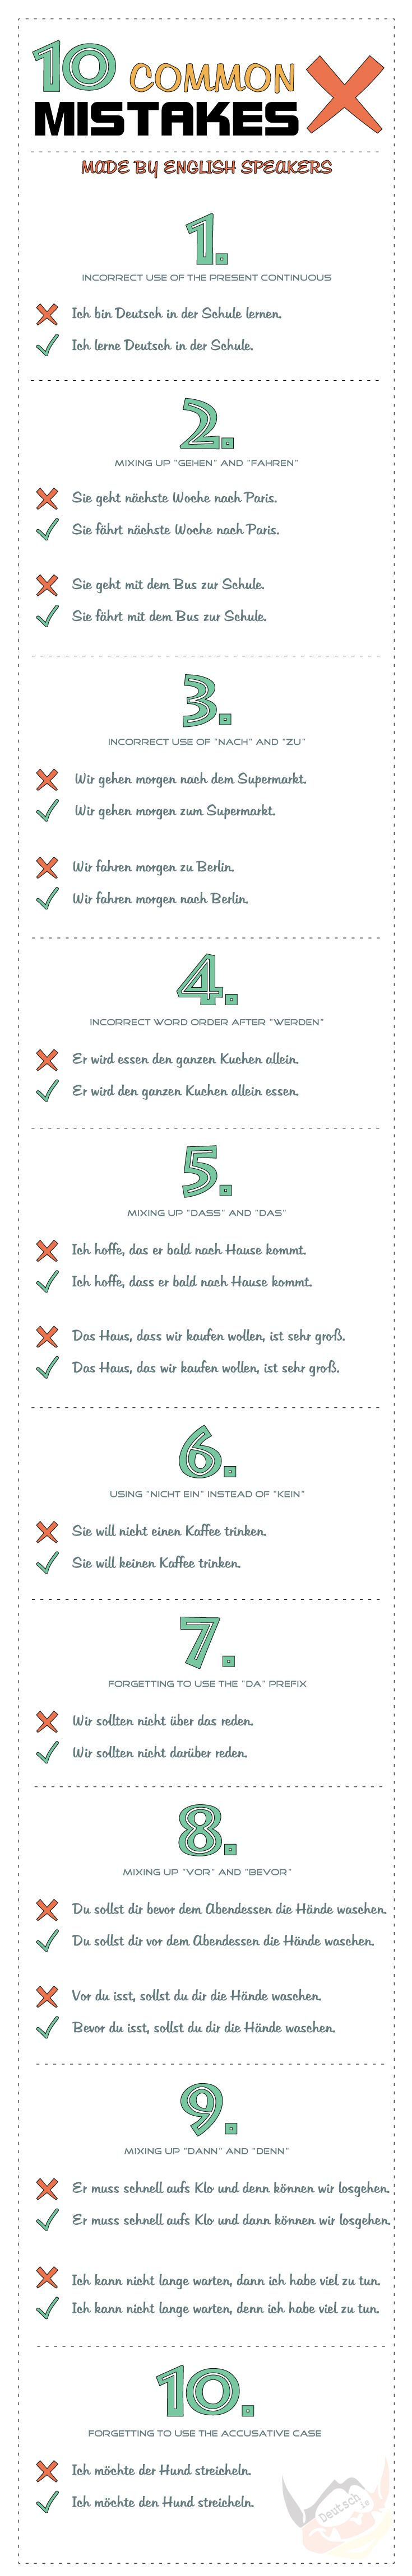 Common #German mistakes made by speakers of English. Check out www.deutsch.ie for more German grammar advice! #Language